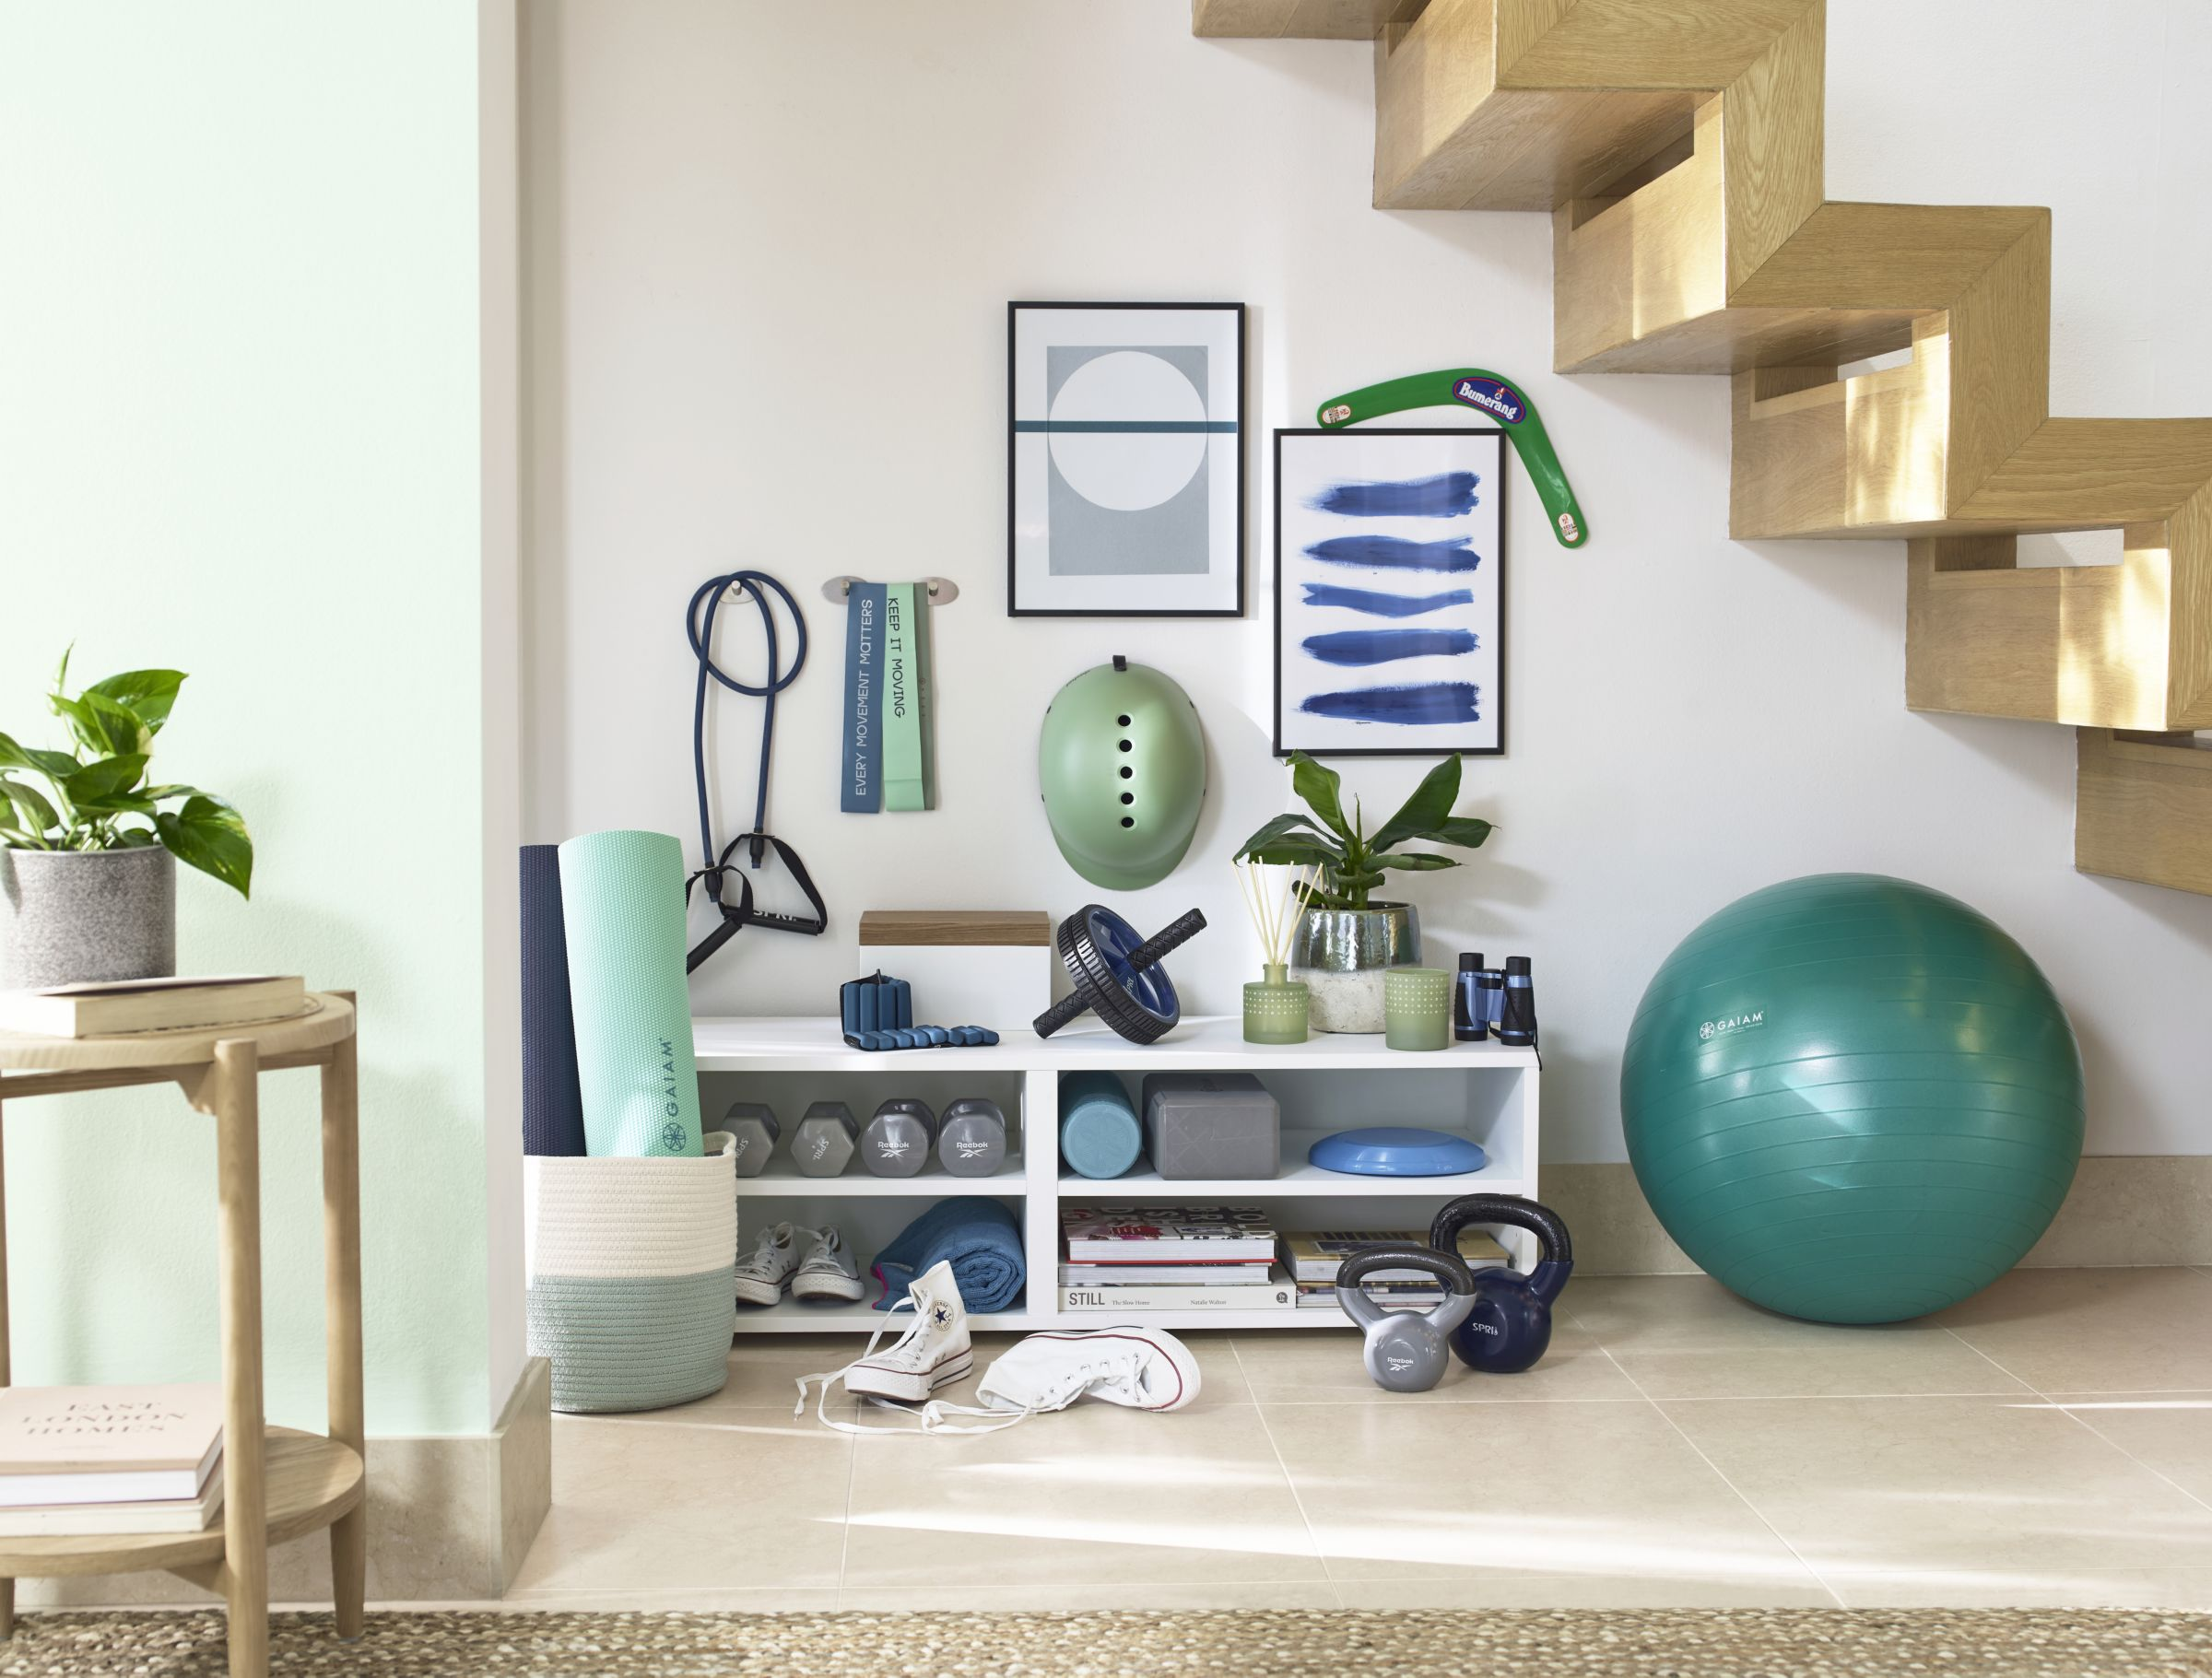 Build a stylish home gym